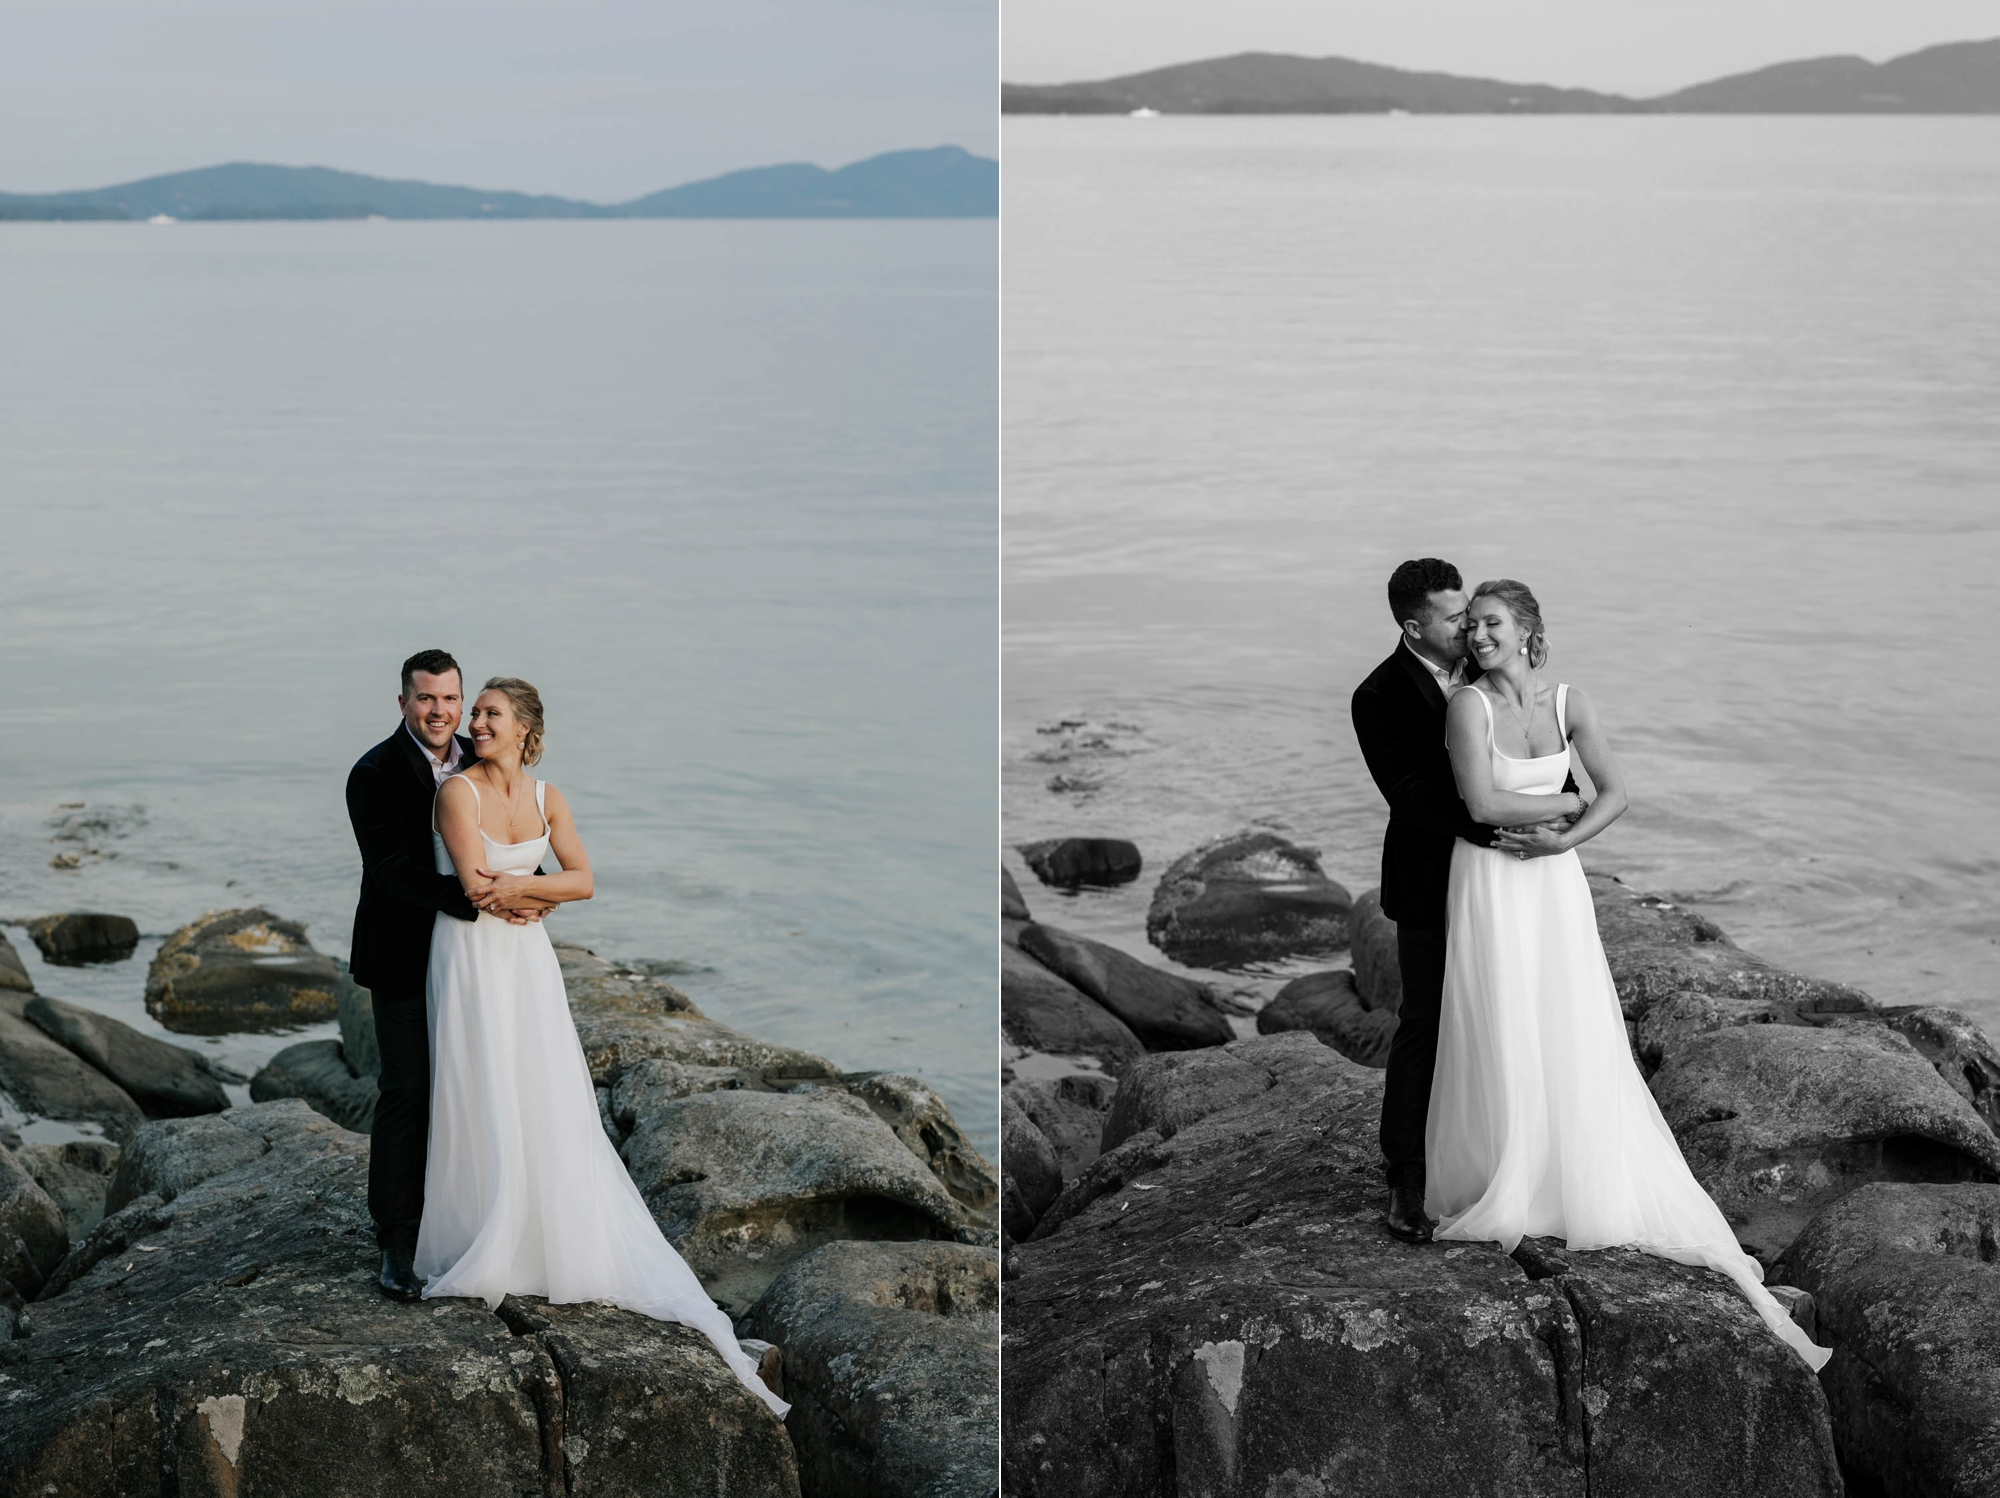 Award winning Vancouver Island Wedding Photographer captures intimate beach wedding on Vancouver Island at beautiful venue and location with sea and mountain views